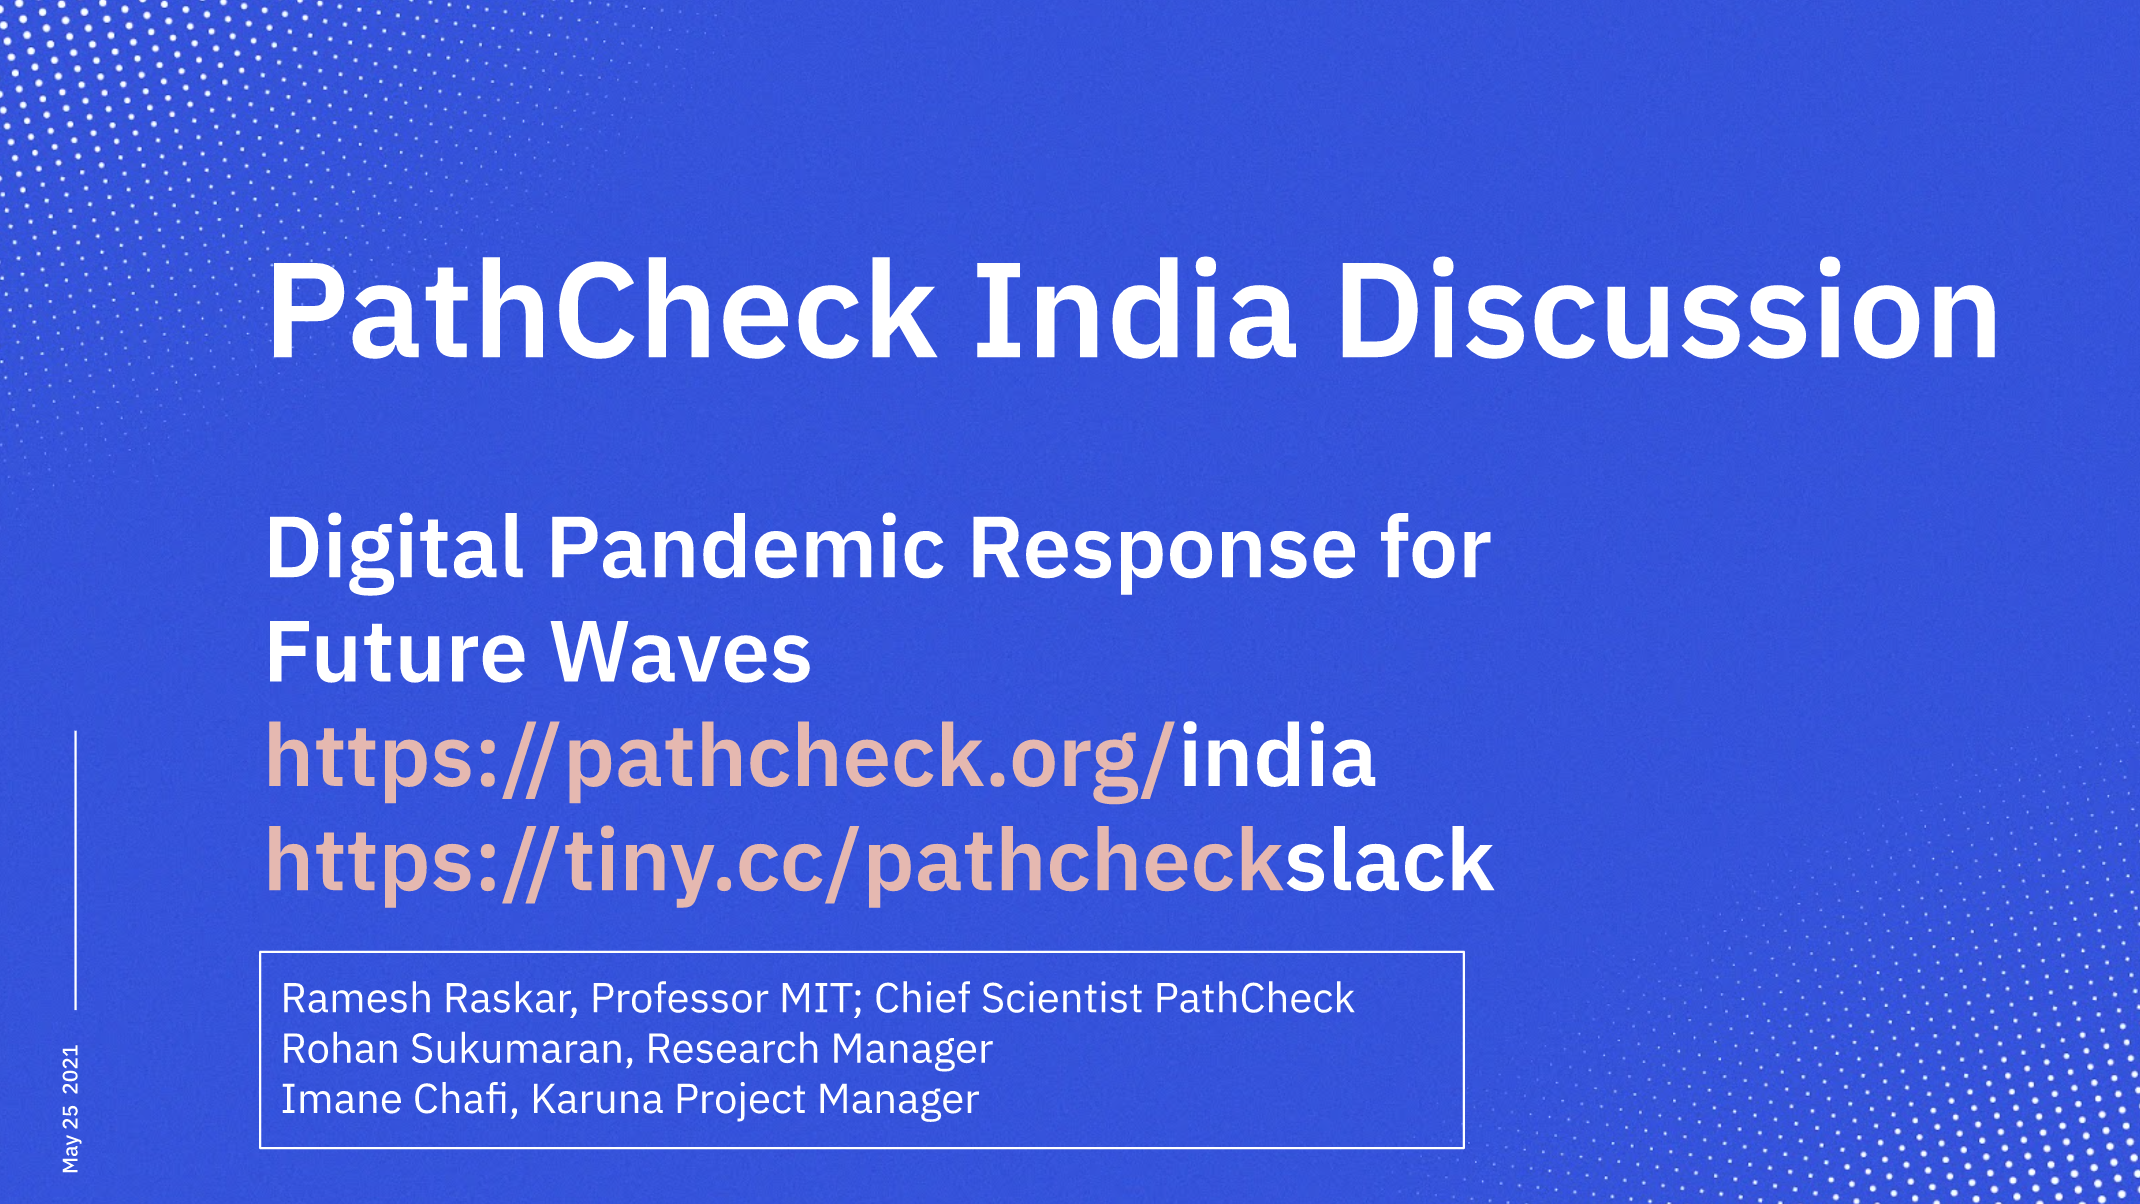 PathCheck Discussion - India response